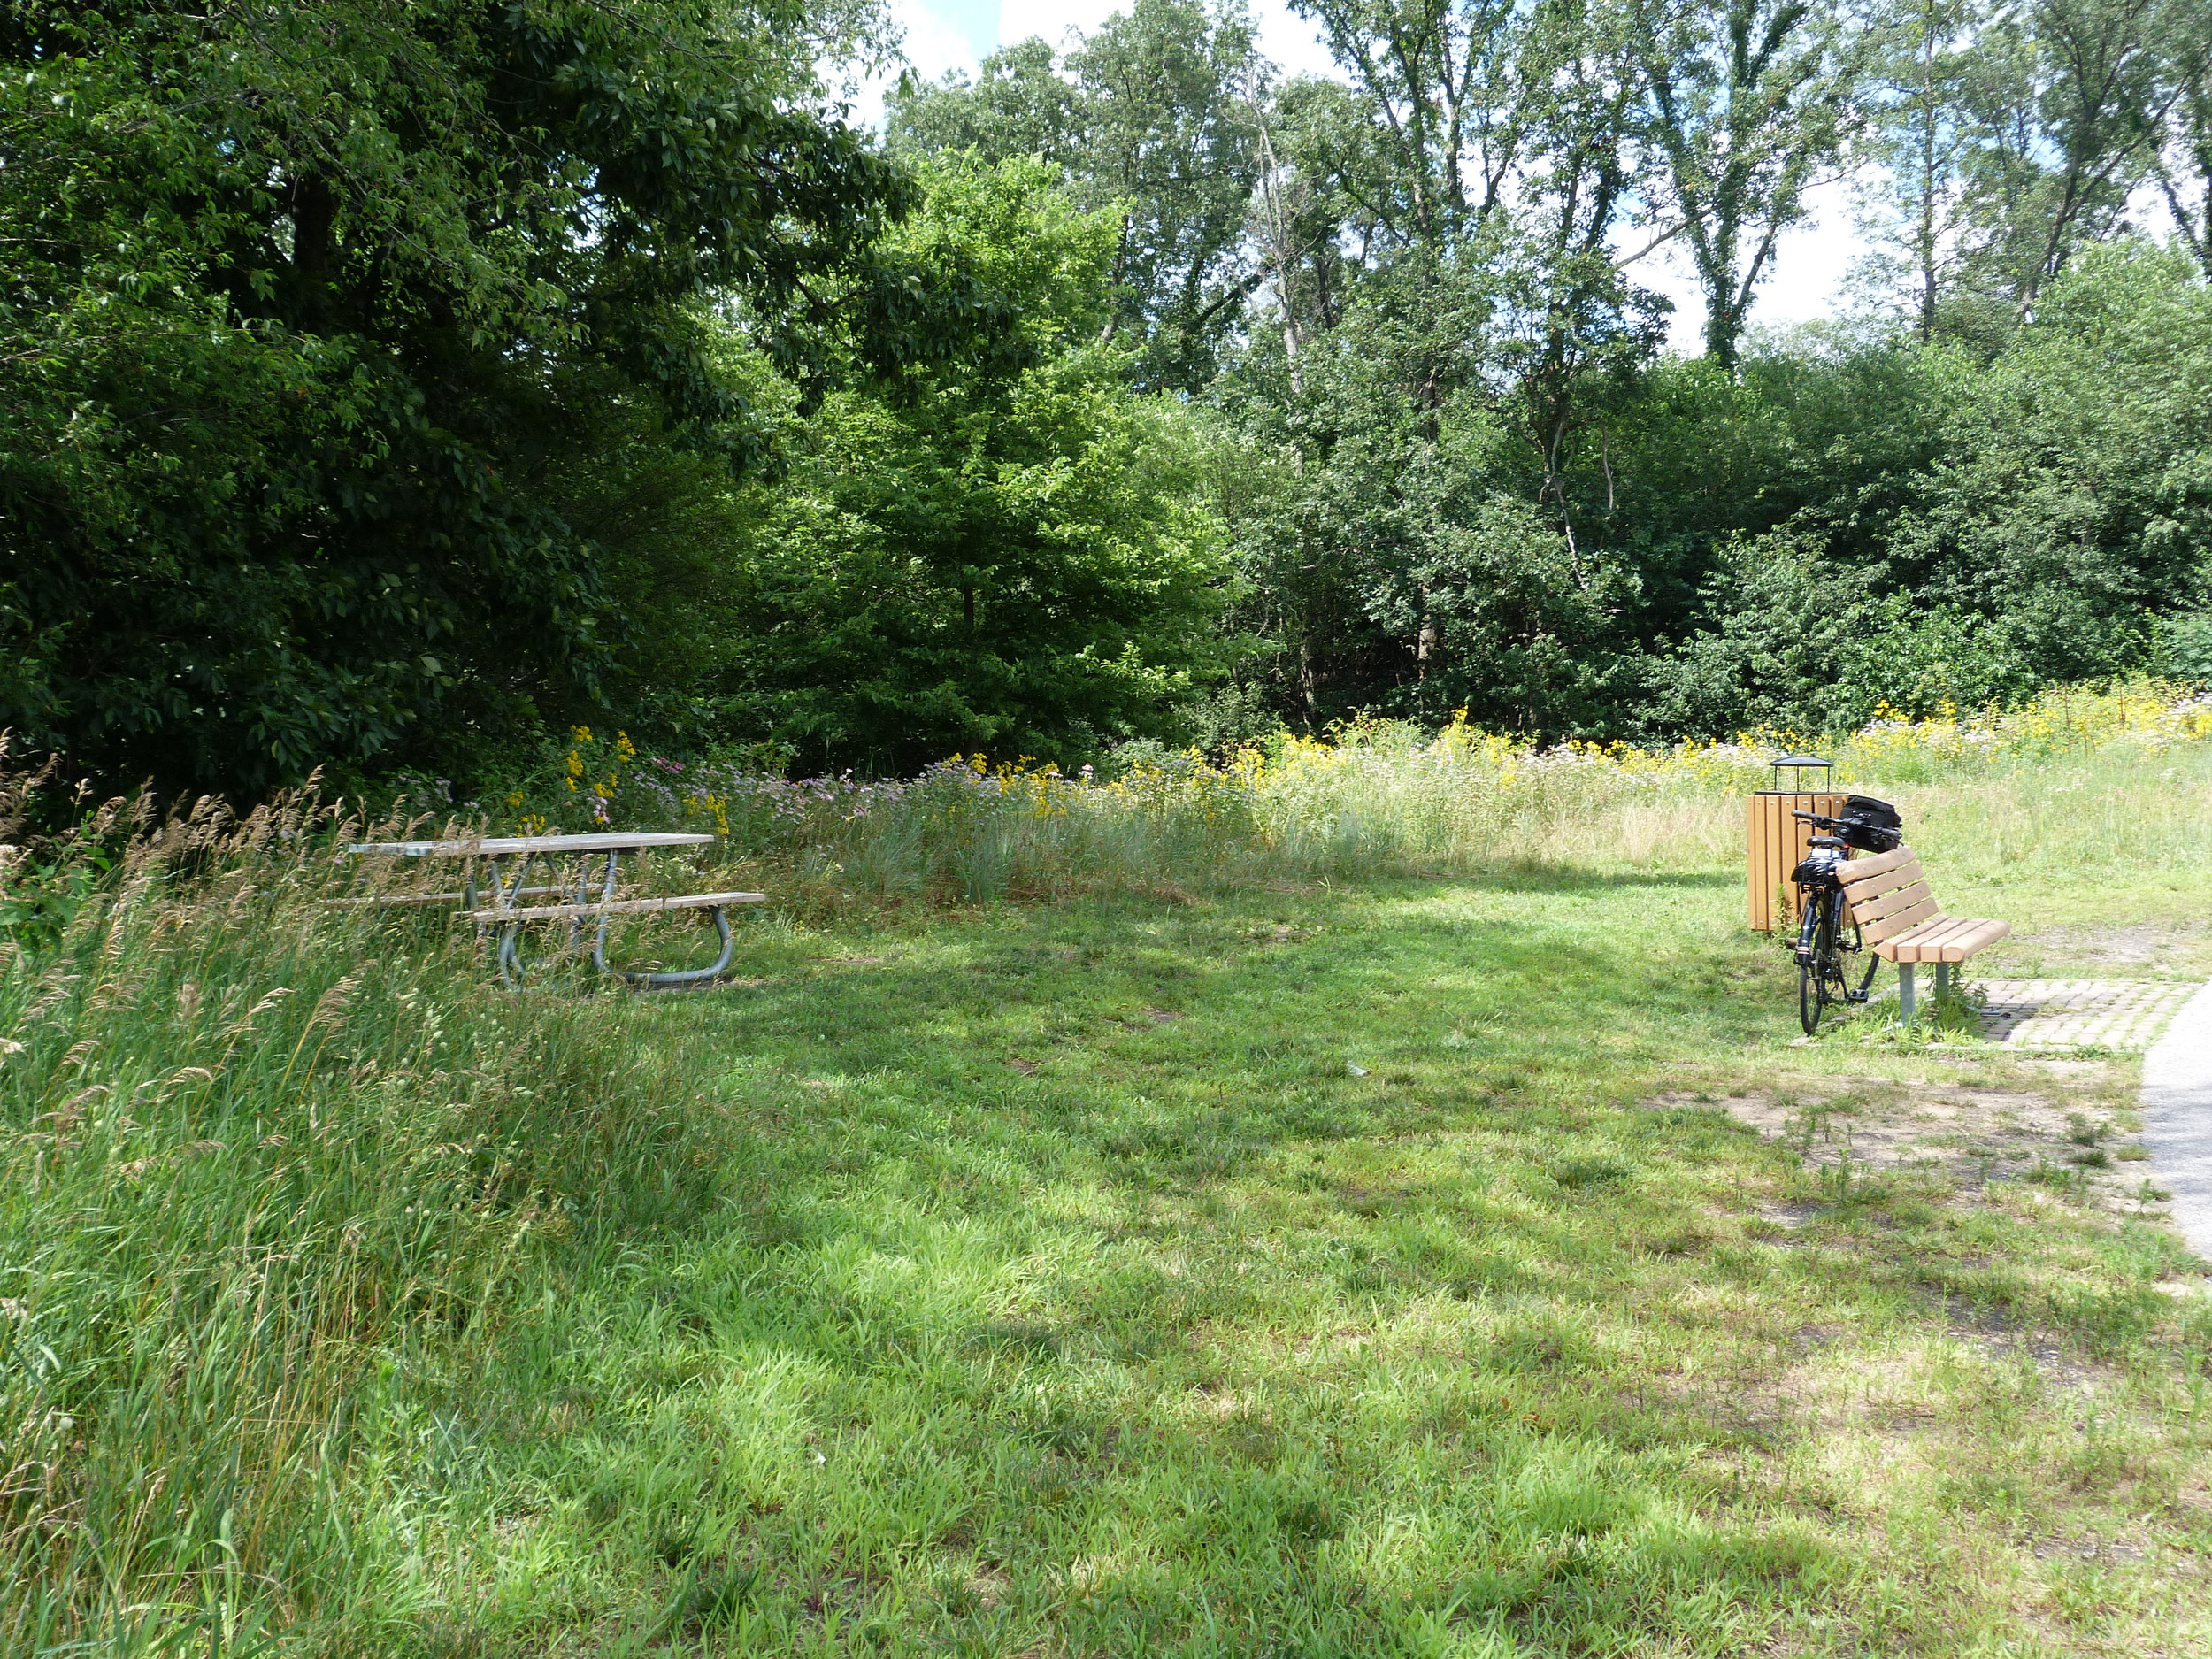 Wayside benches and picnic tables.